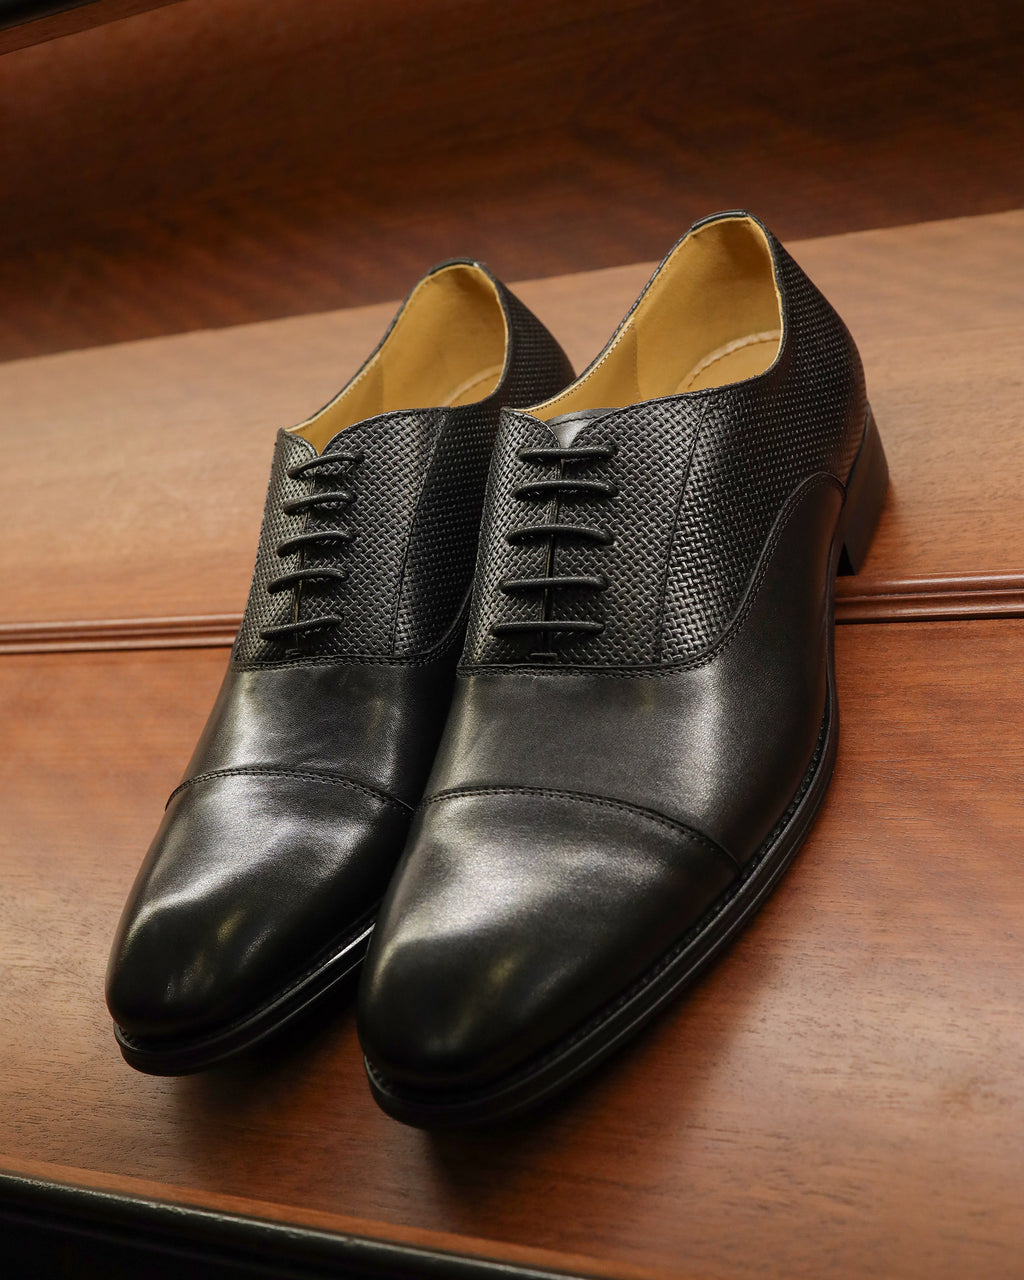 Tomaz F268 Cap Toe Oxfords (Black)